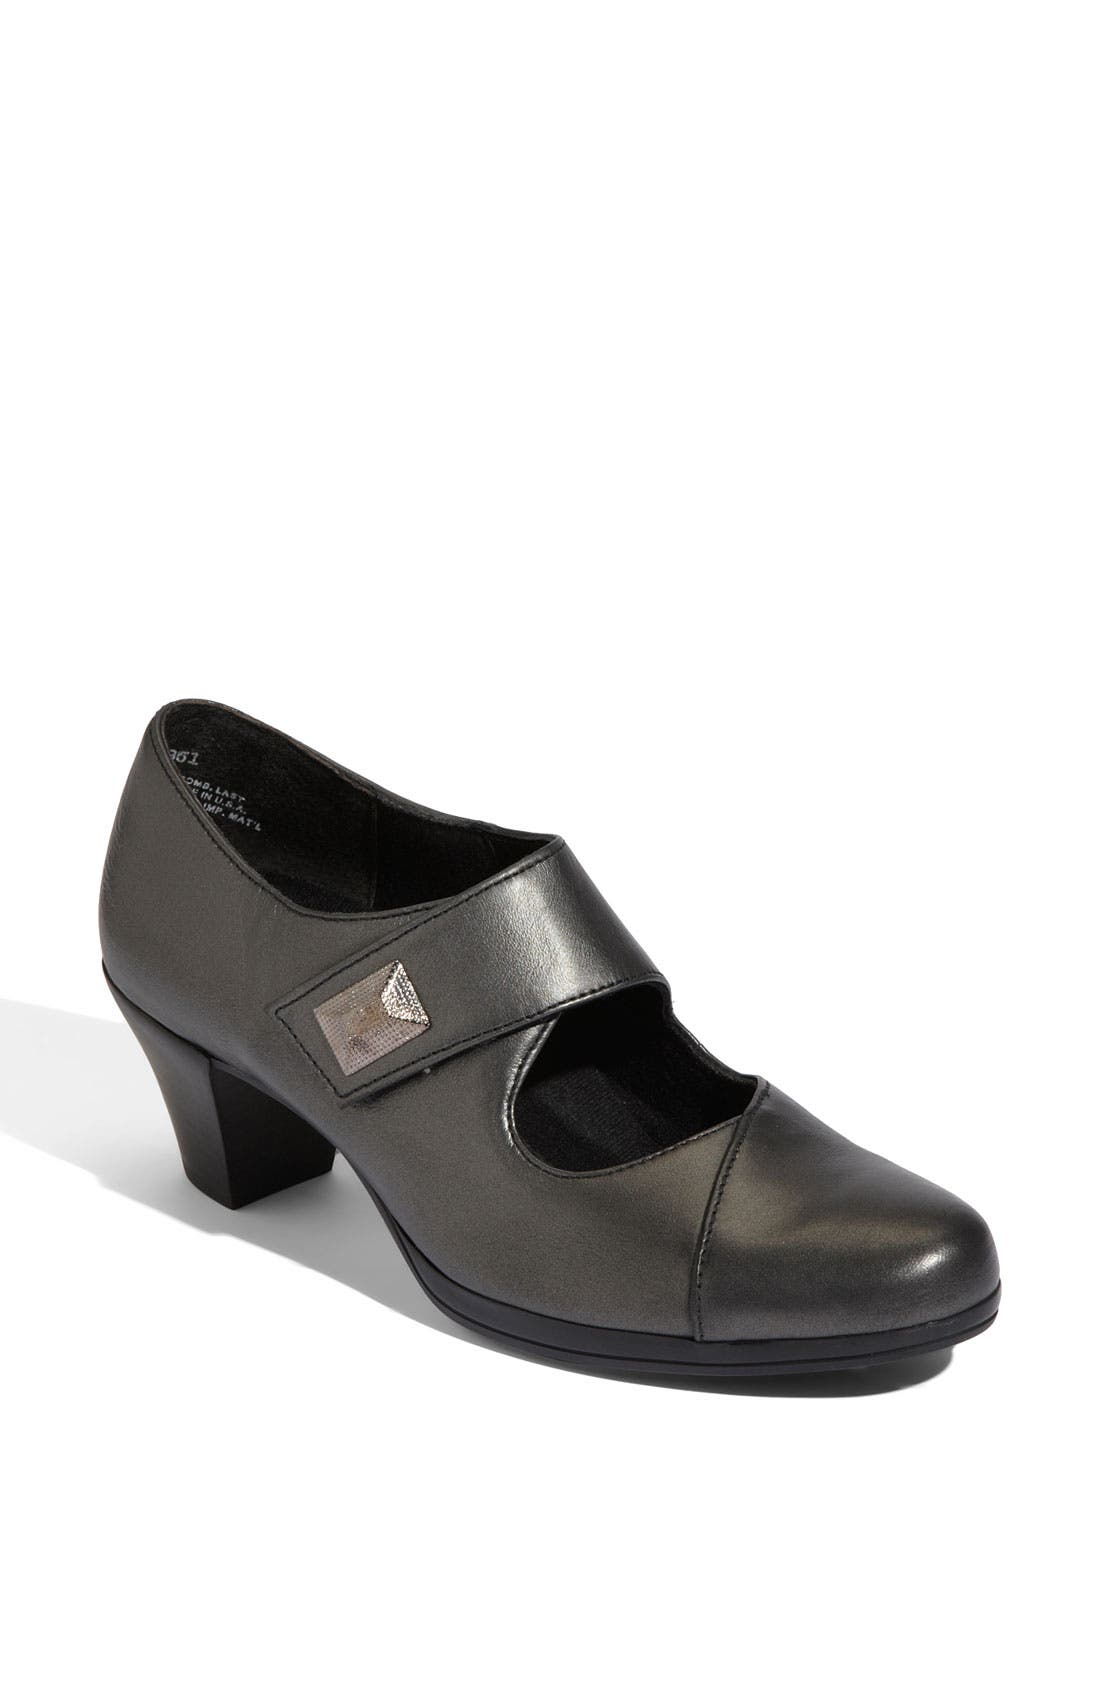 Main Image - Munro 'Leann' Mary Jane Pump